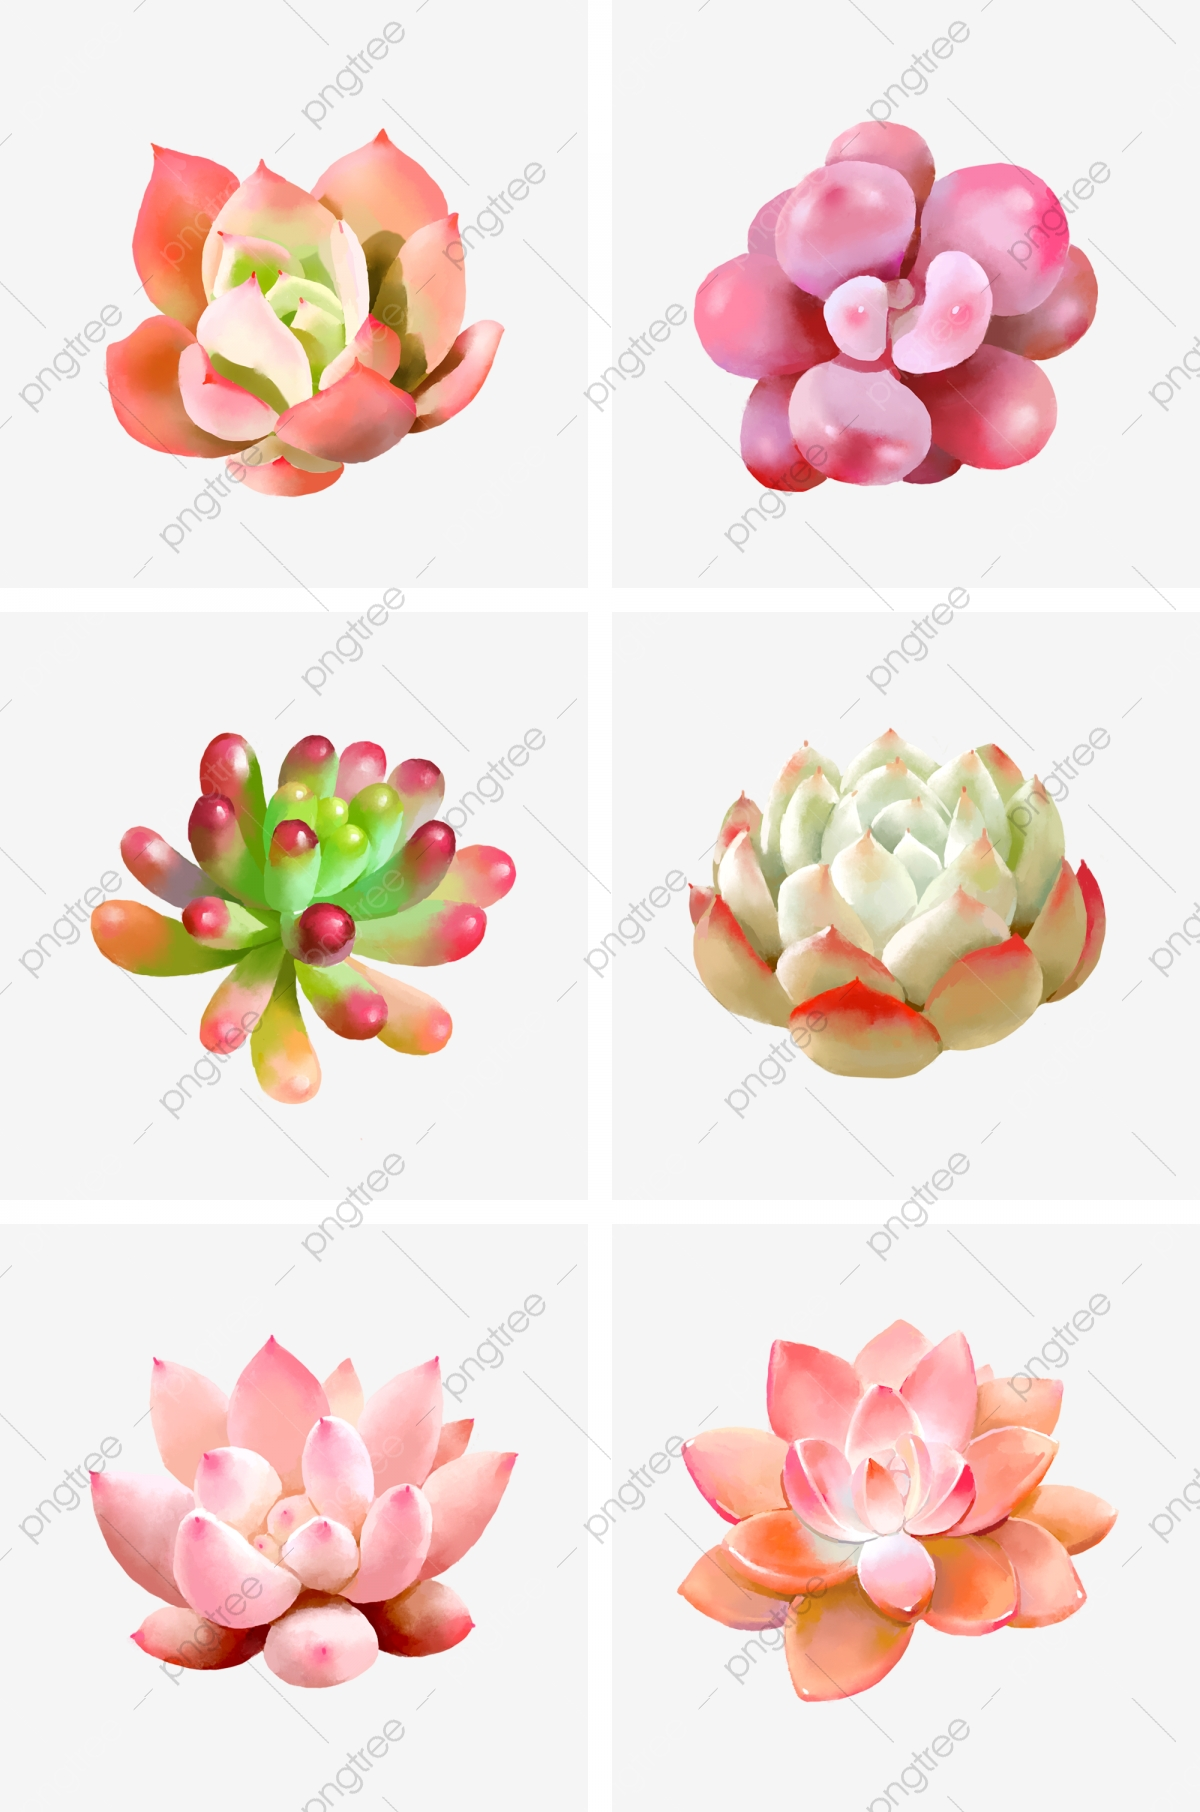 Small Fresh Hand Painted Watercolor Succulent Series Painted Fleshy Watercolor Hand Painted Small Fresh Png Transparent Clipart Image And Psd File For Free Download